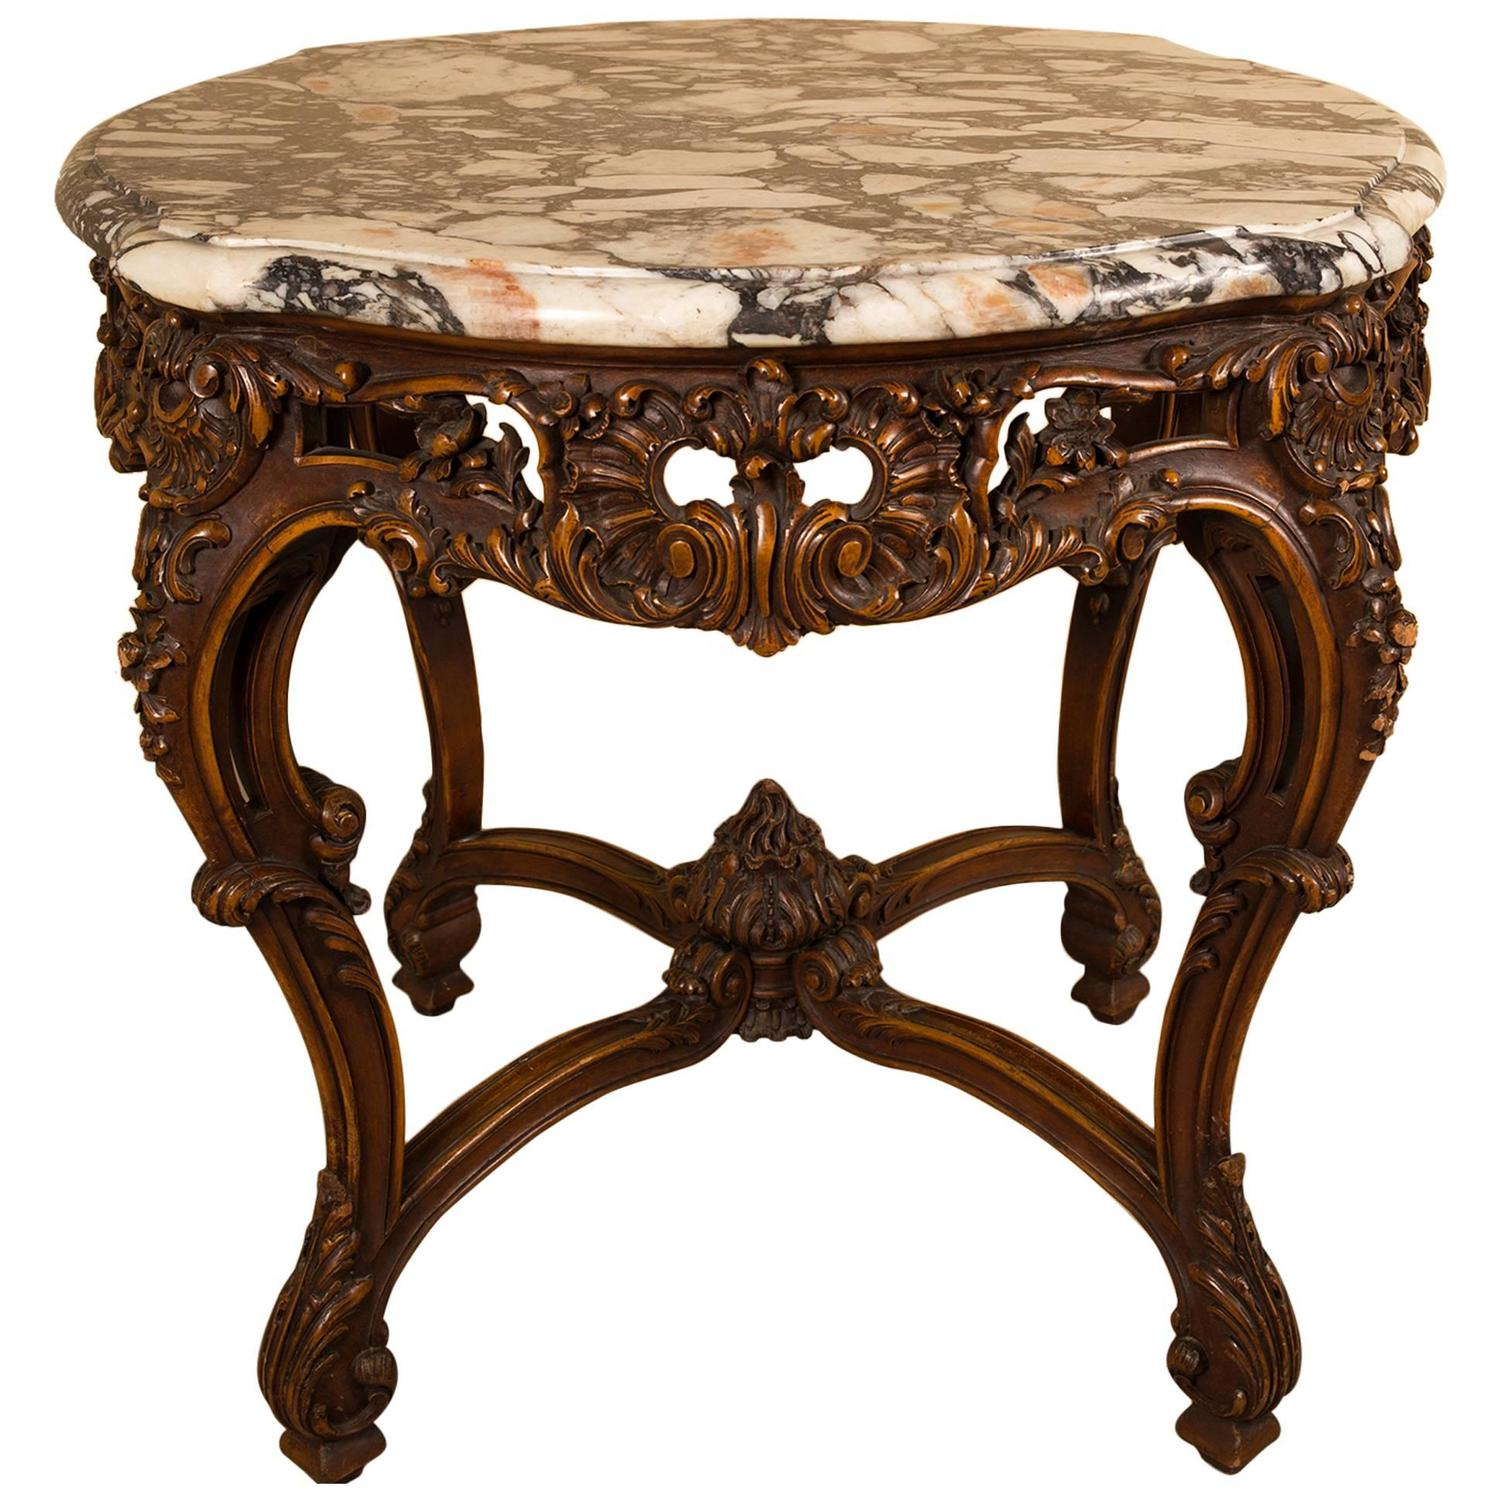 Pretty Round Coffee Table Louis XV Style Gilded Wood and marble